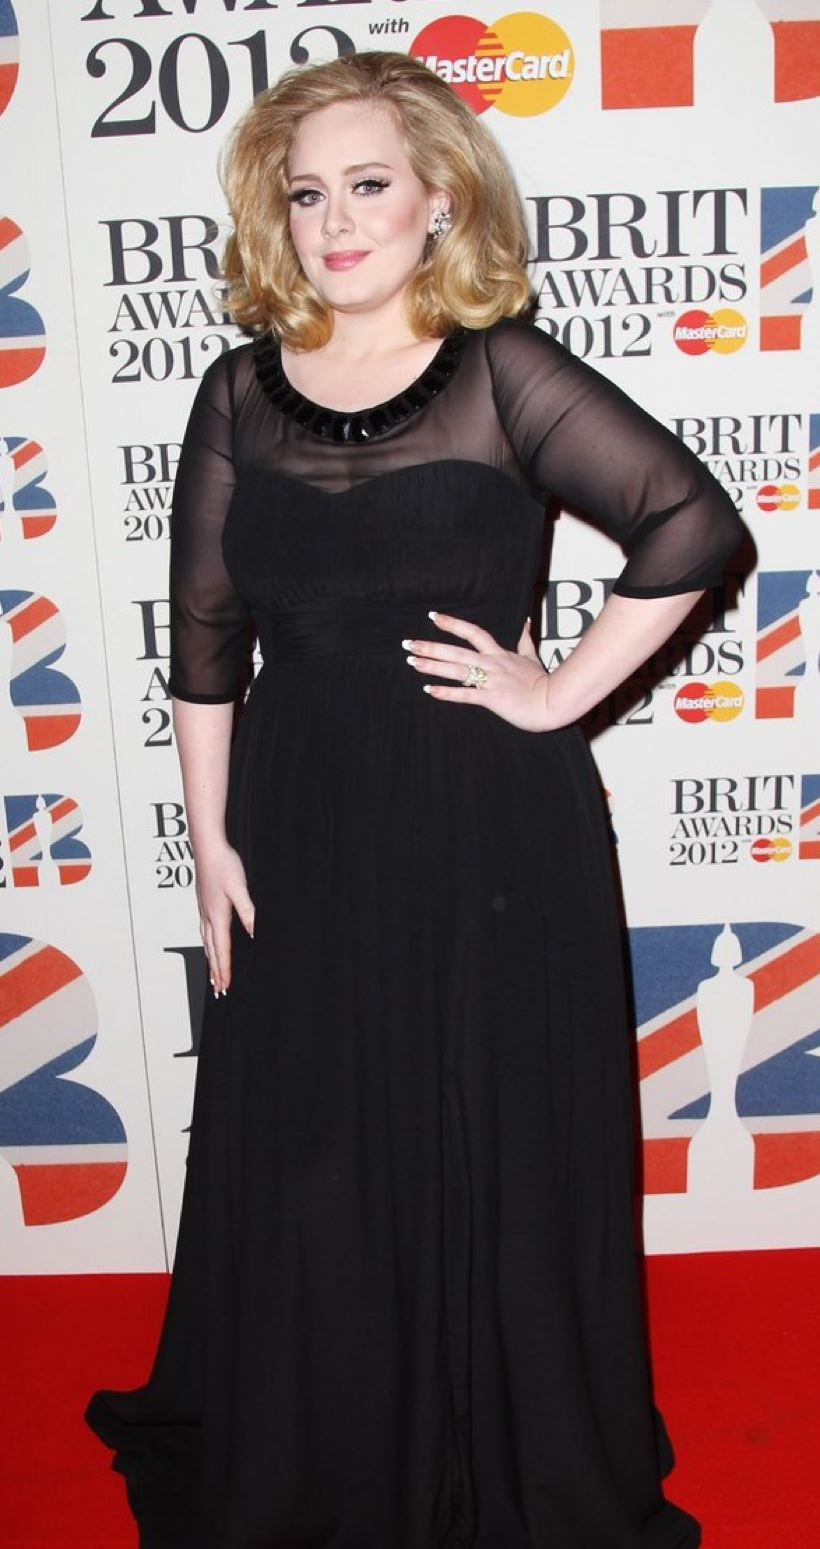 Adele @ 2012 Brit Awards, February 21